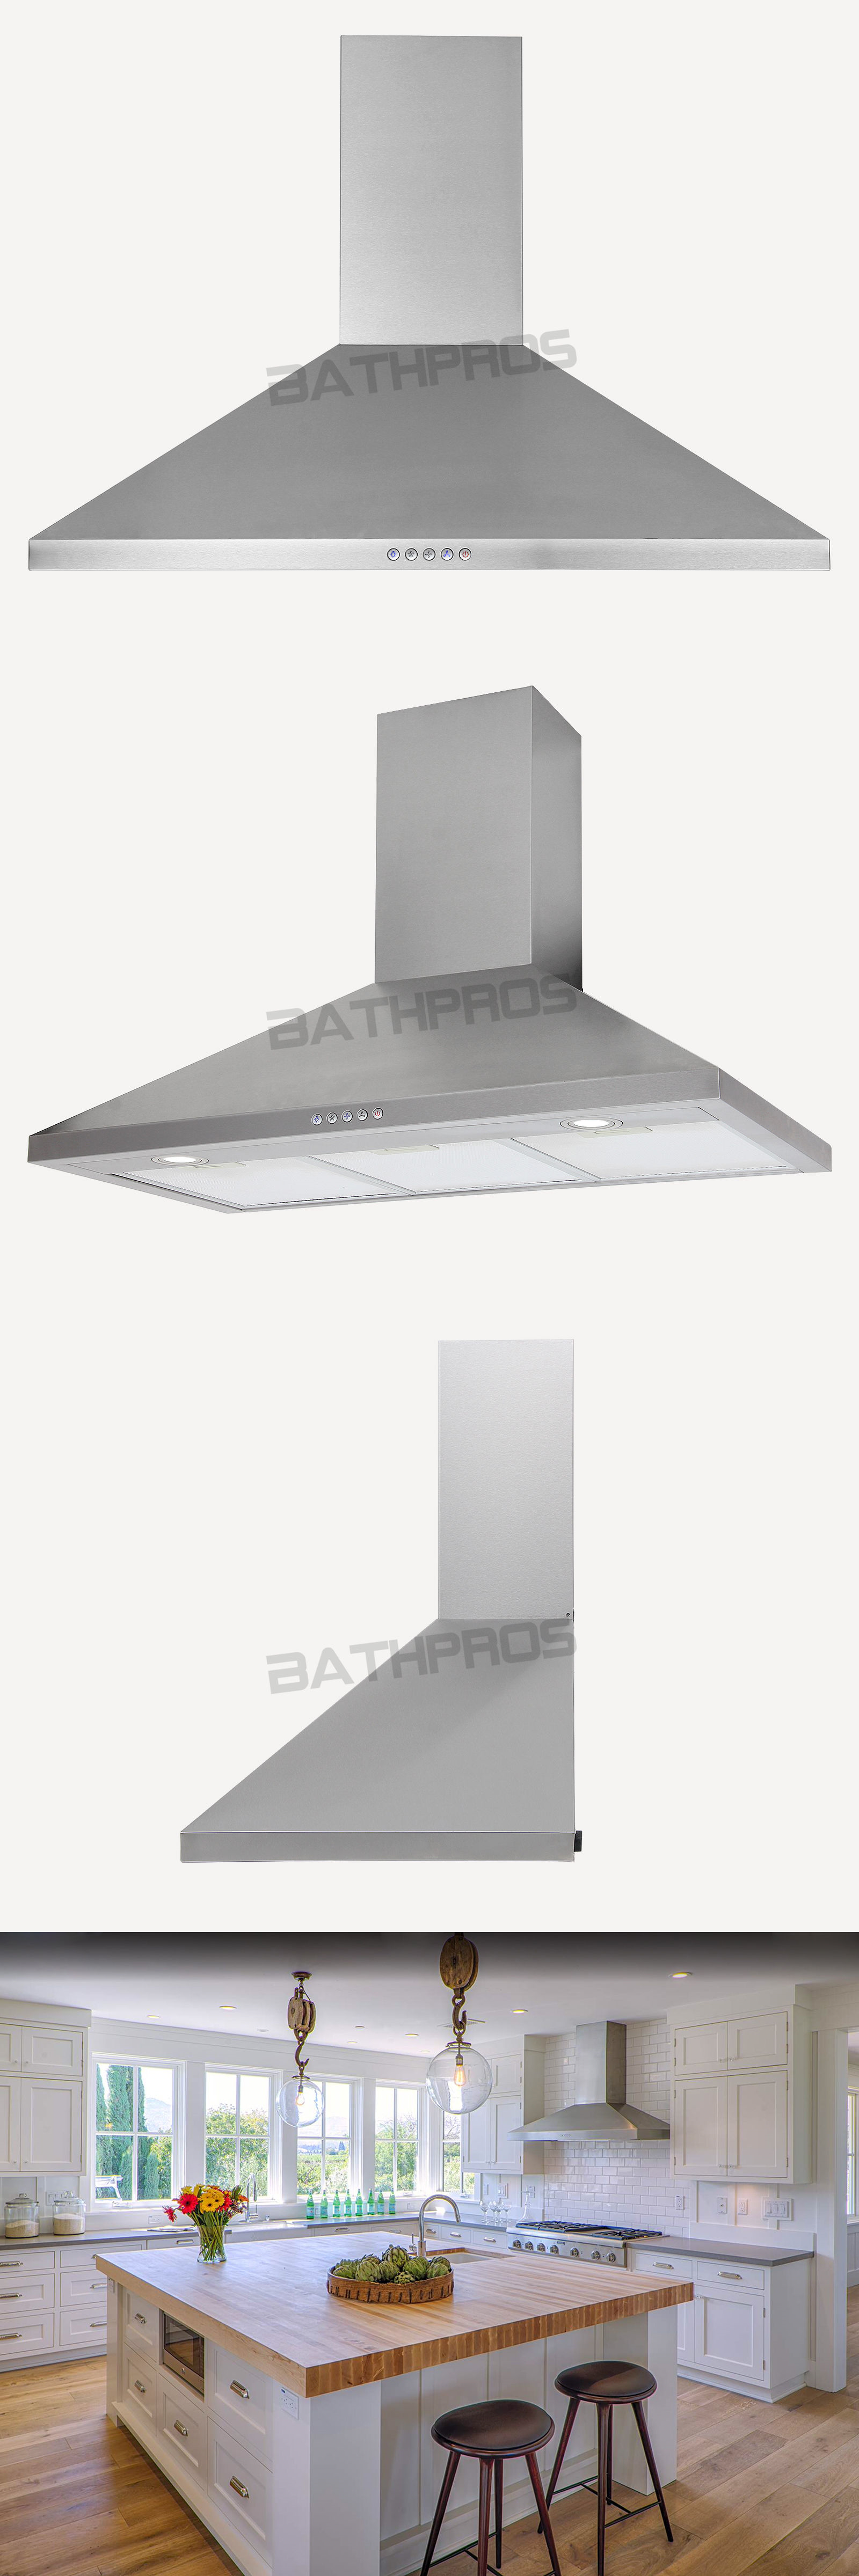 Range Hoods 71253: Limited Electronic Switch Stainless Steel 36 ...